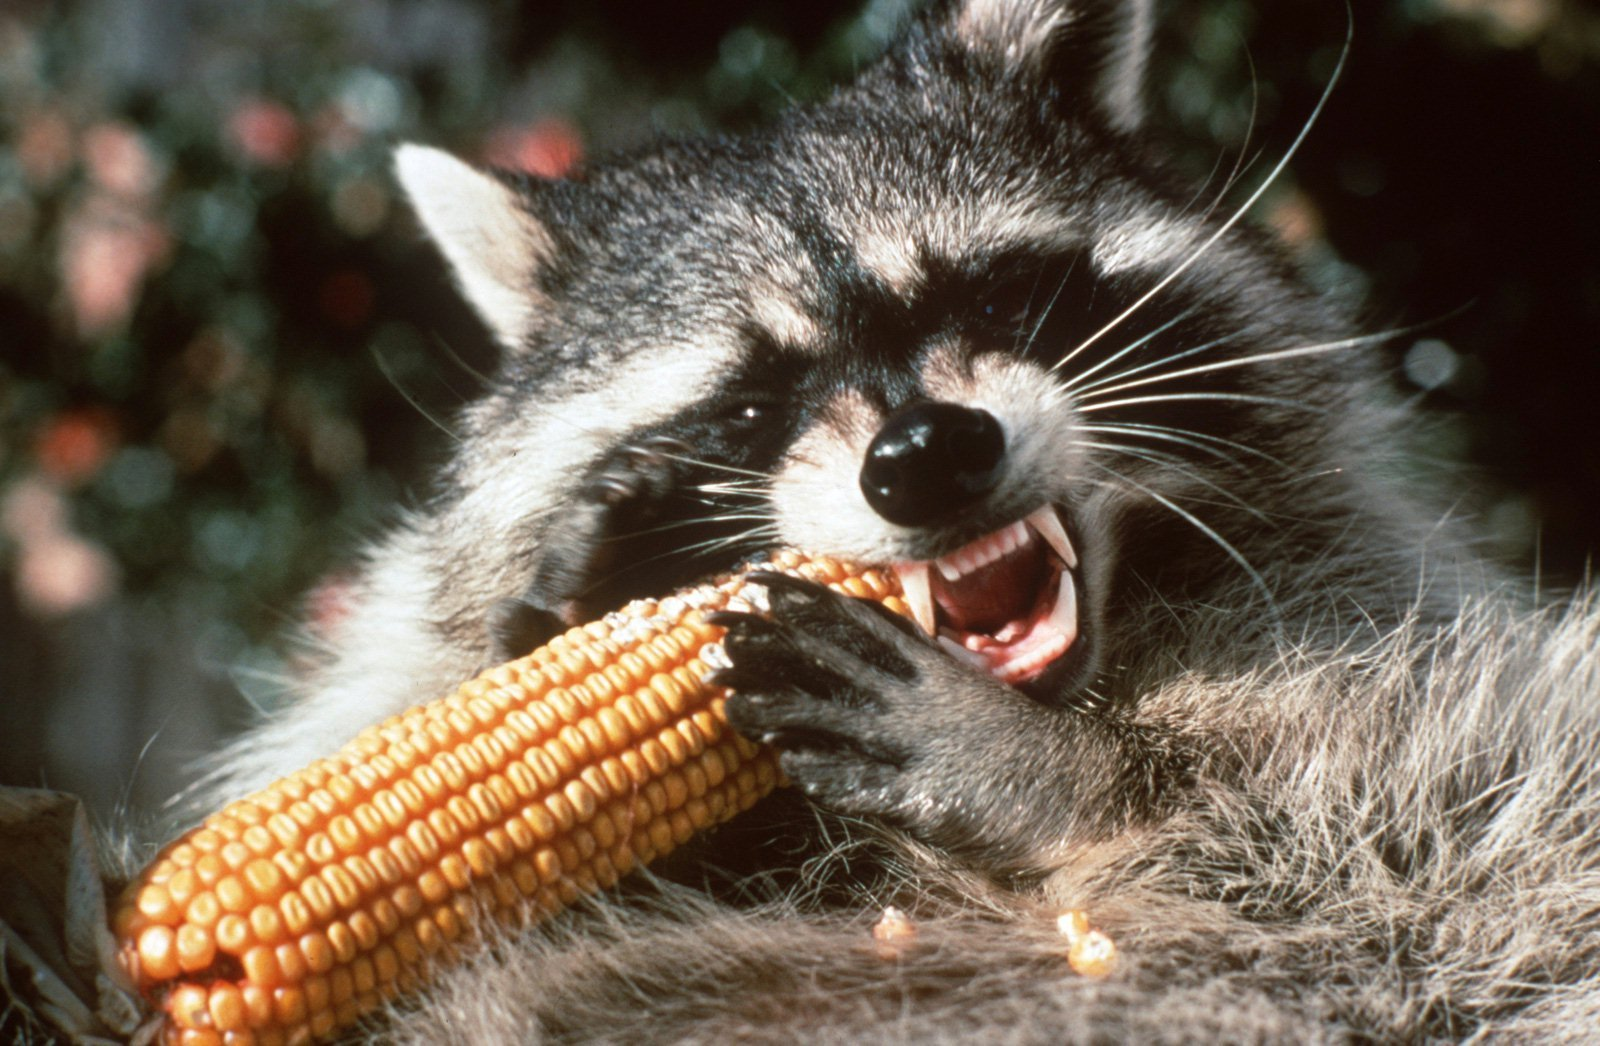 Raccoon 'tossed' from vehicle tests positive for rabies ... Raccoon With Rabies